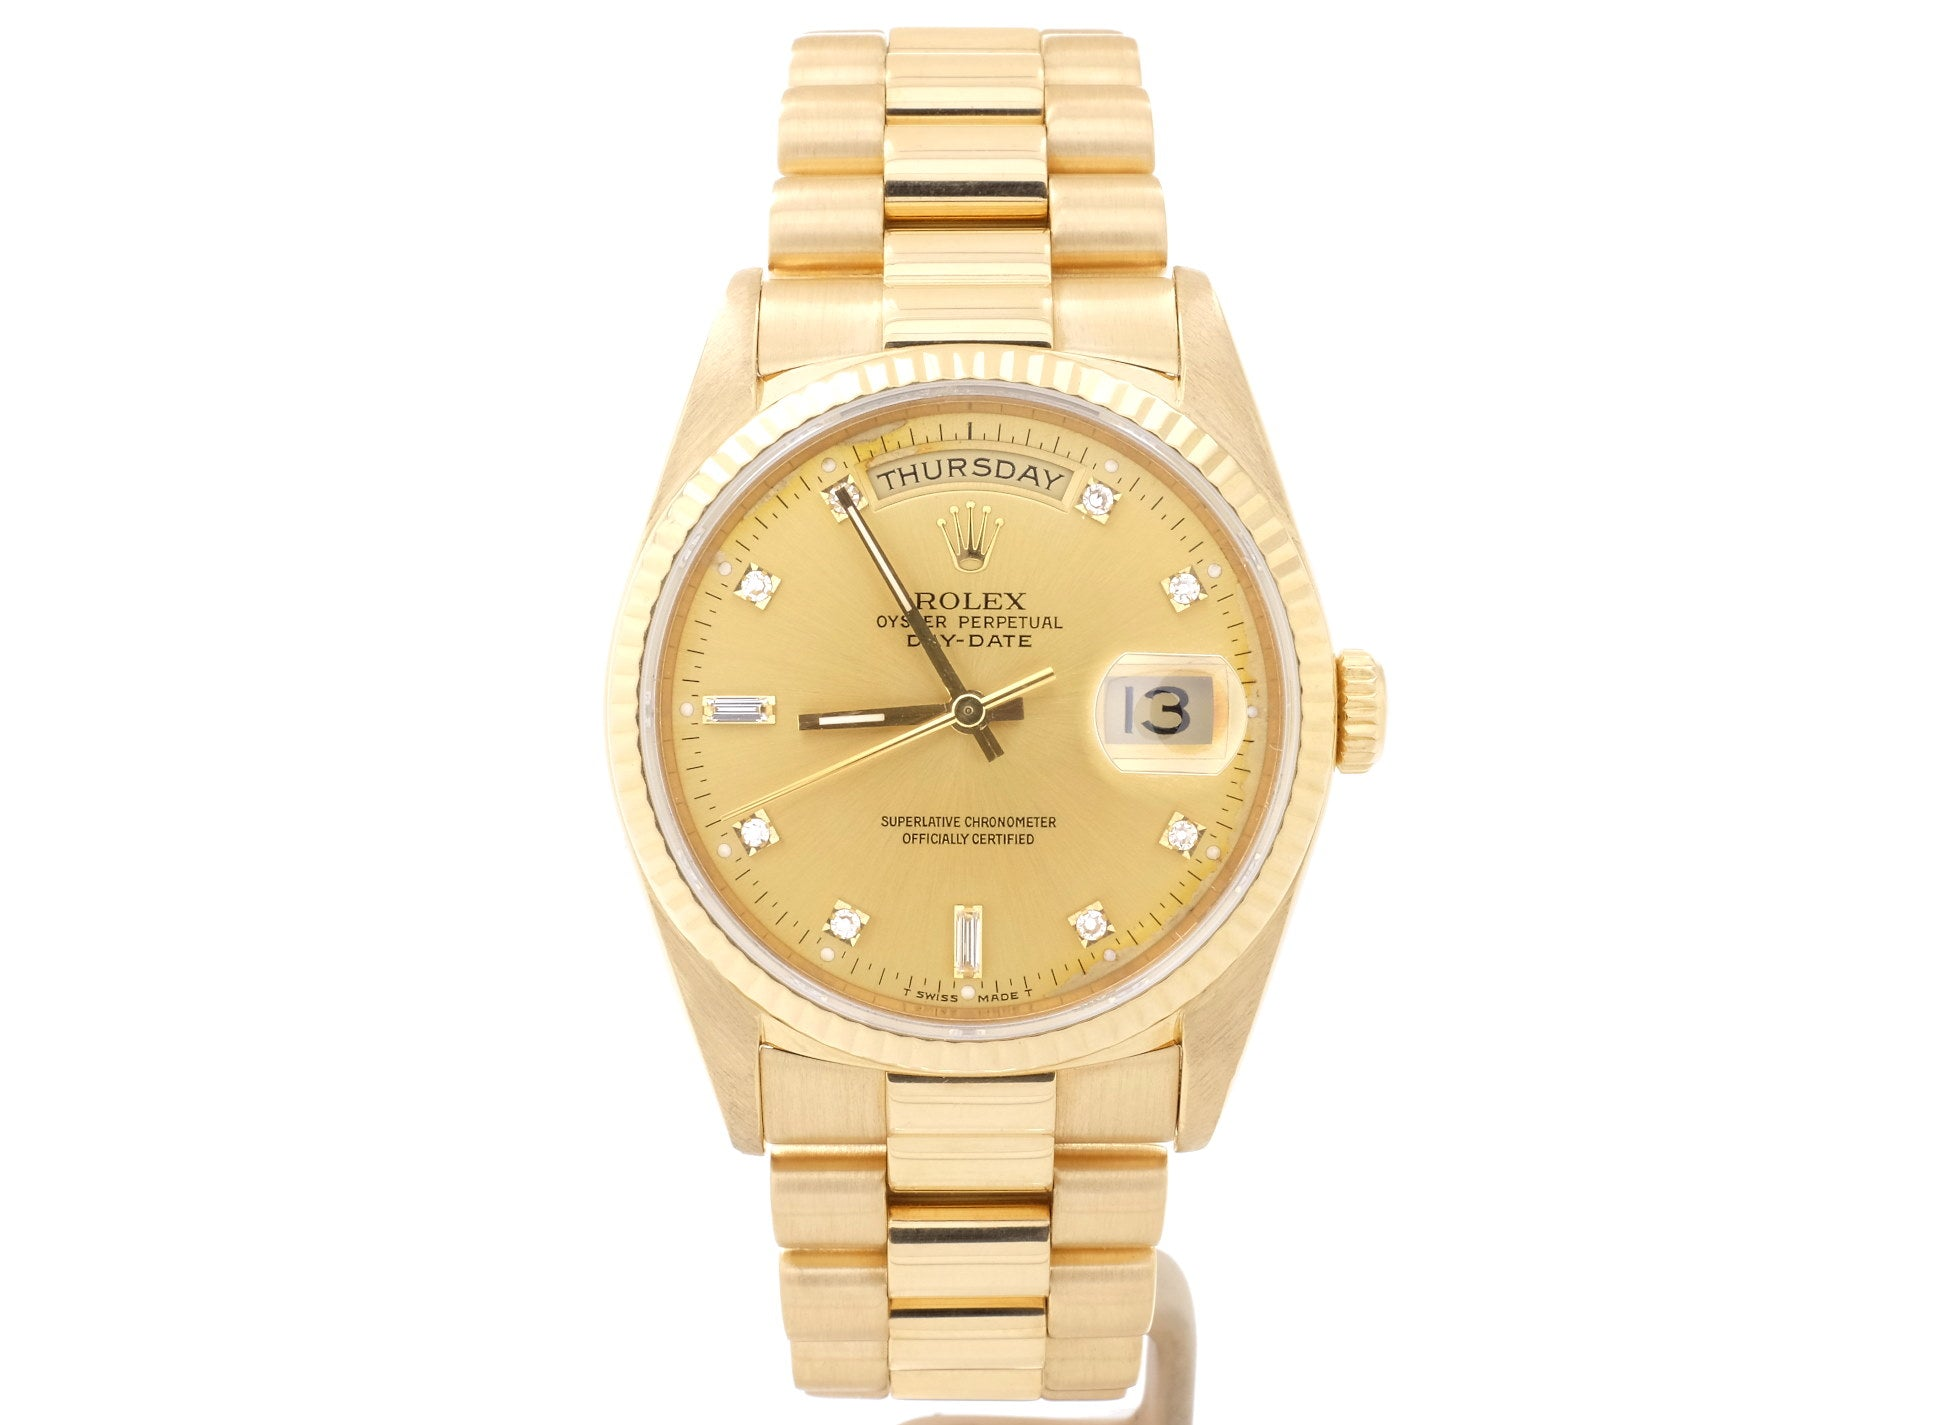 18ct Yellow Gold Rolex DAY-DATE 18238 ('President') with Diamond-Dot Dial